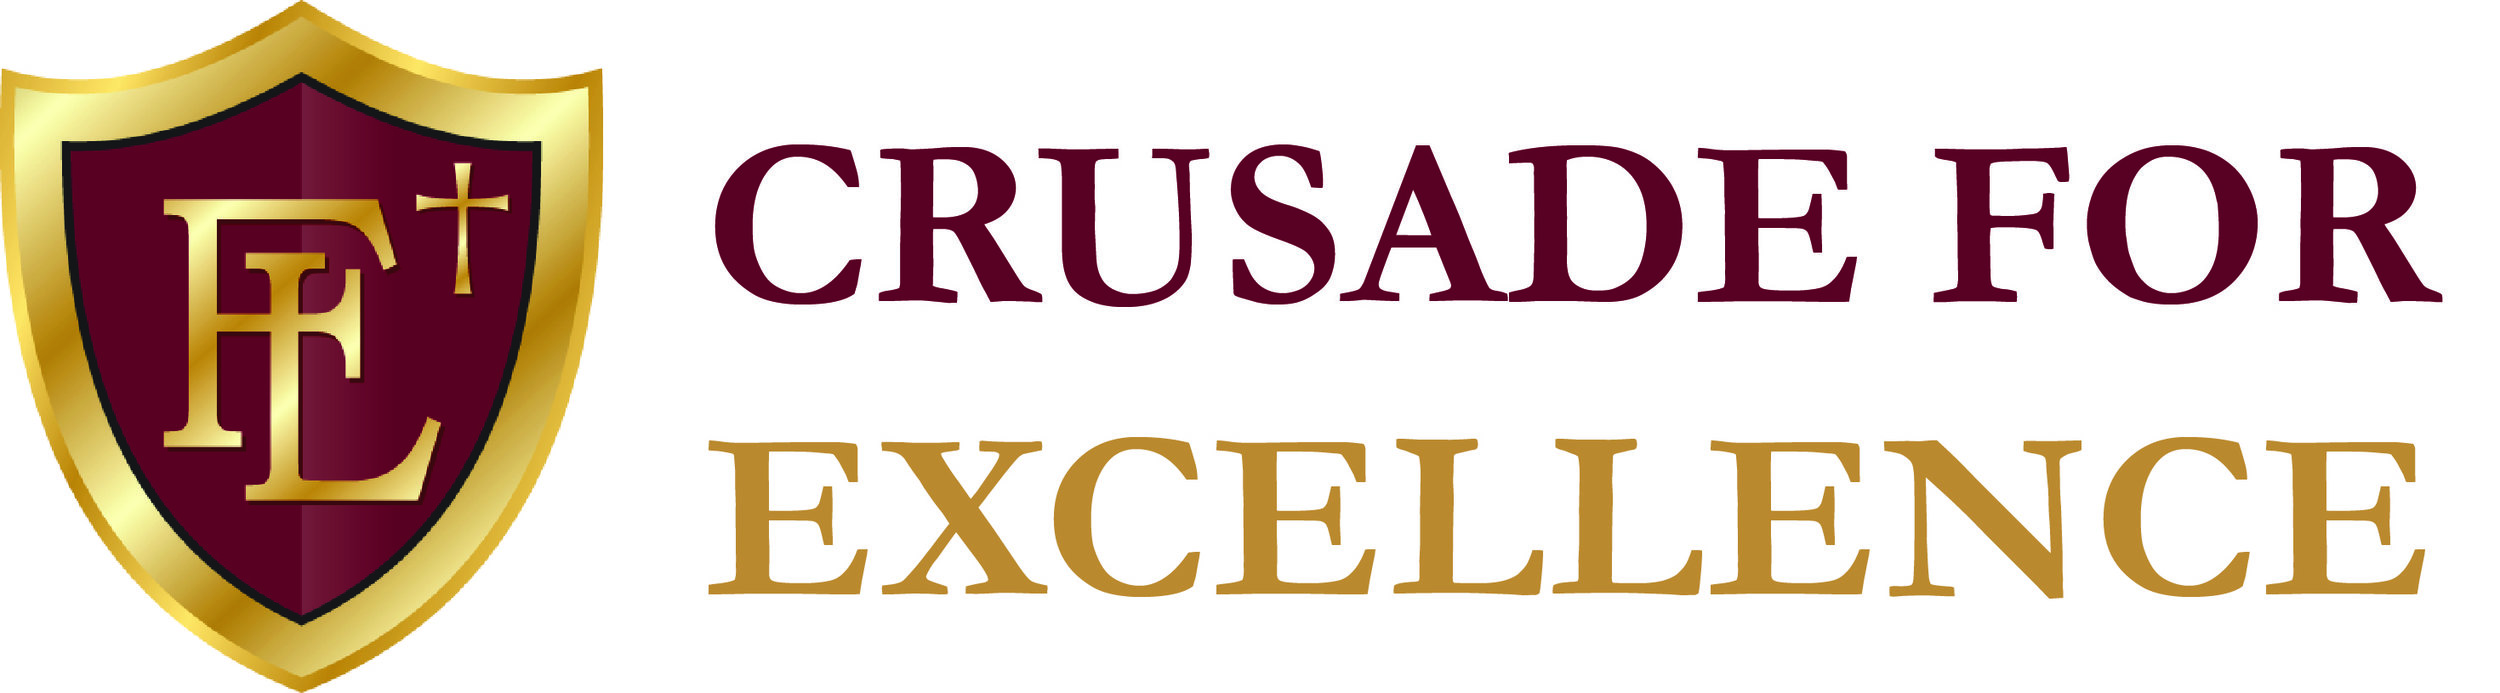 Crusade_for_Excellence_Logo_FINAL.jpg